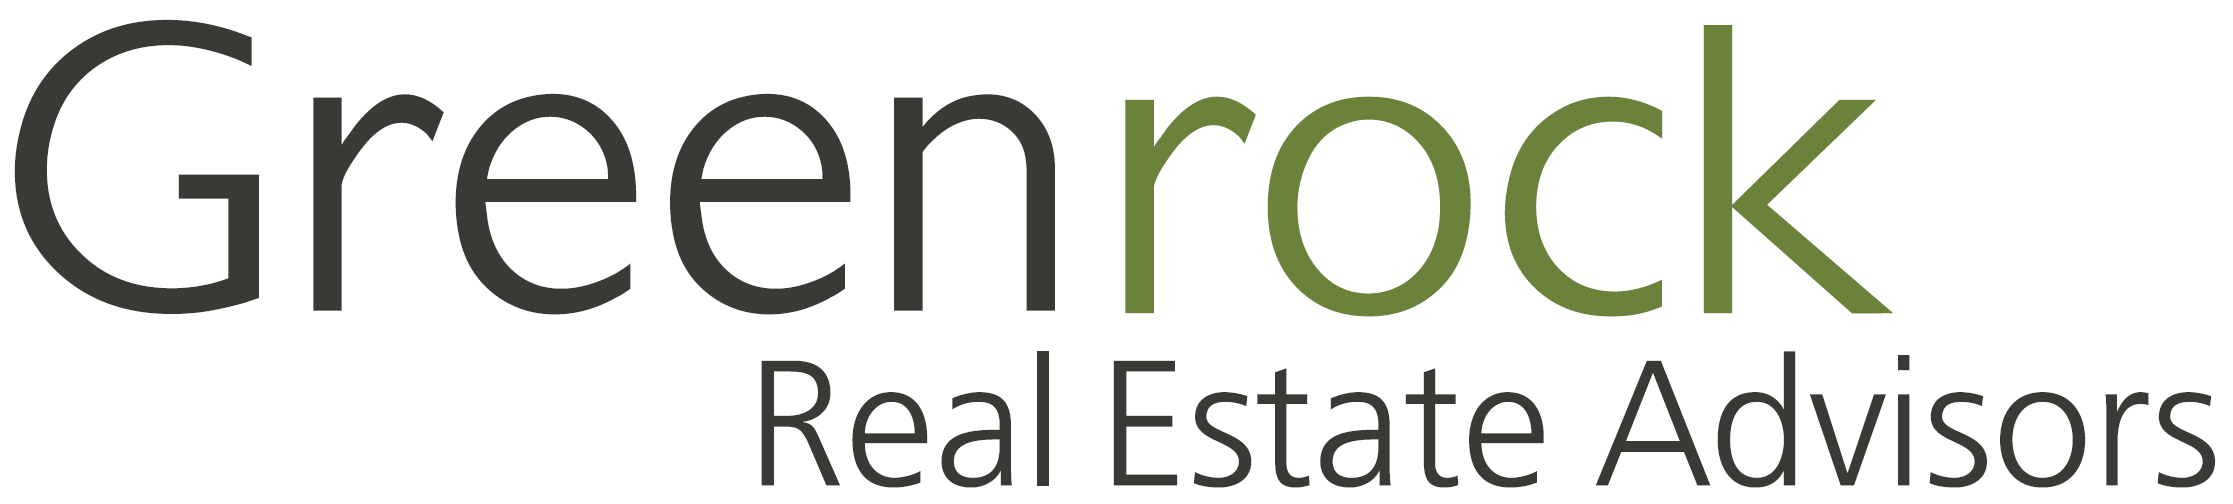 Greenrock Real Estate Advisors